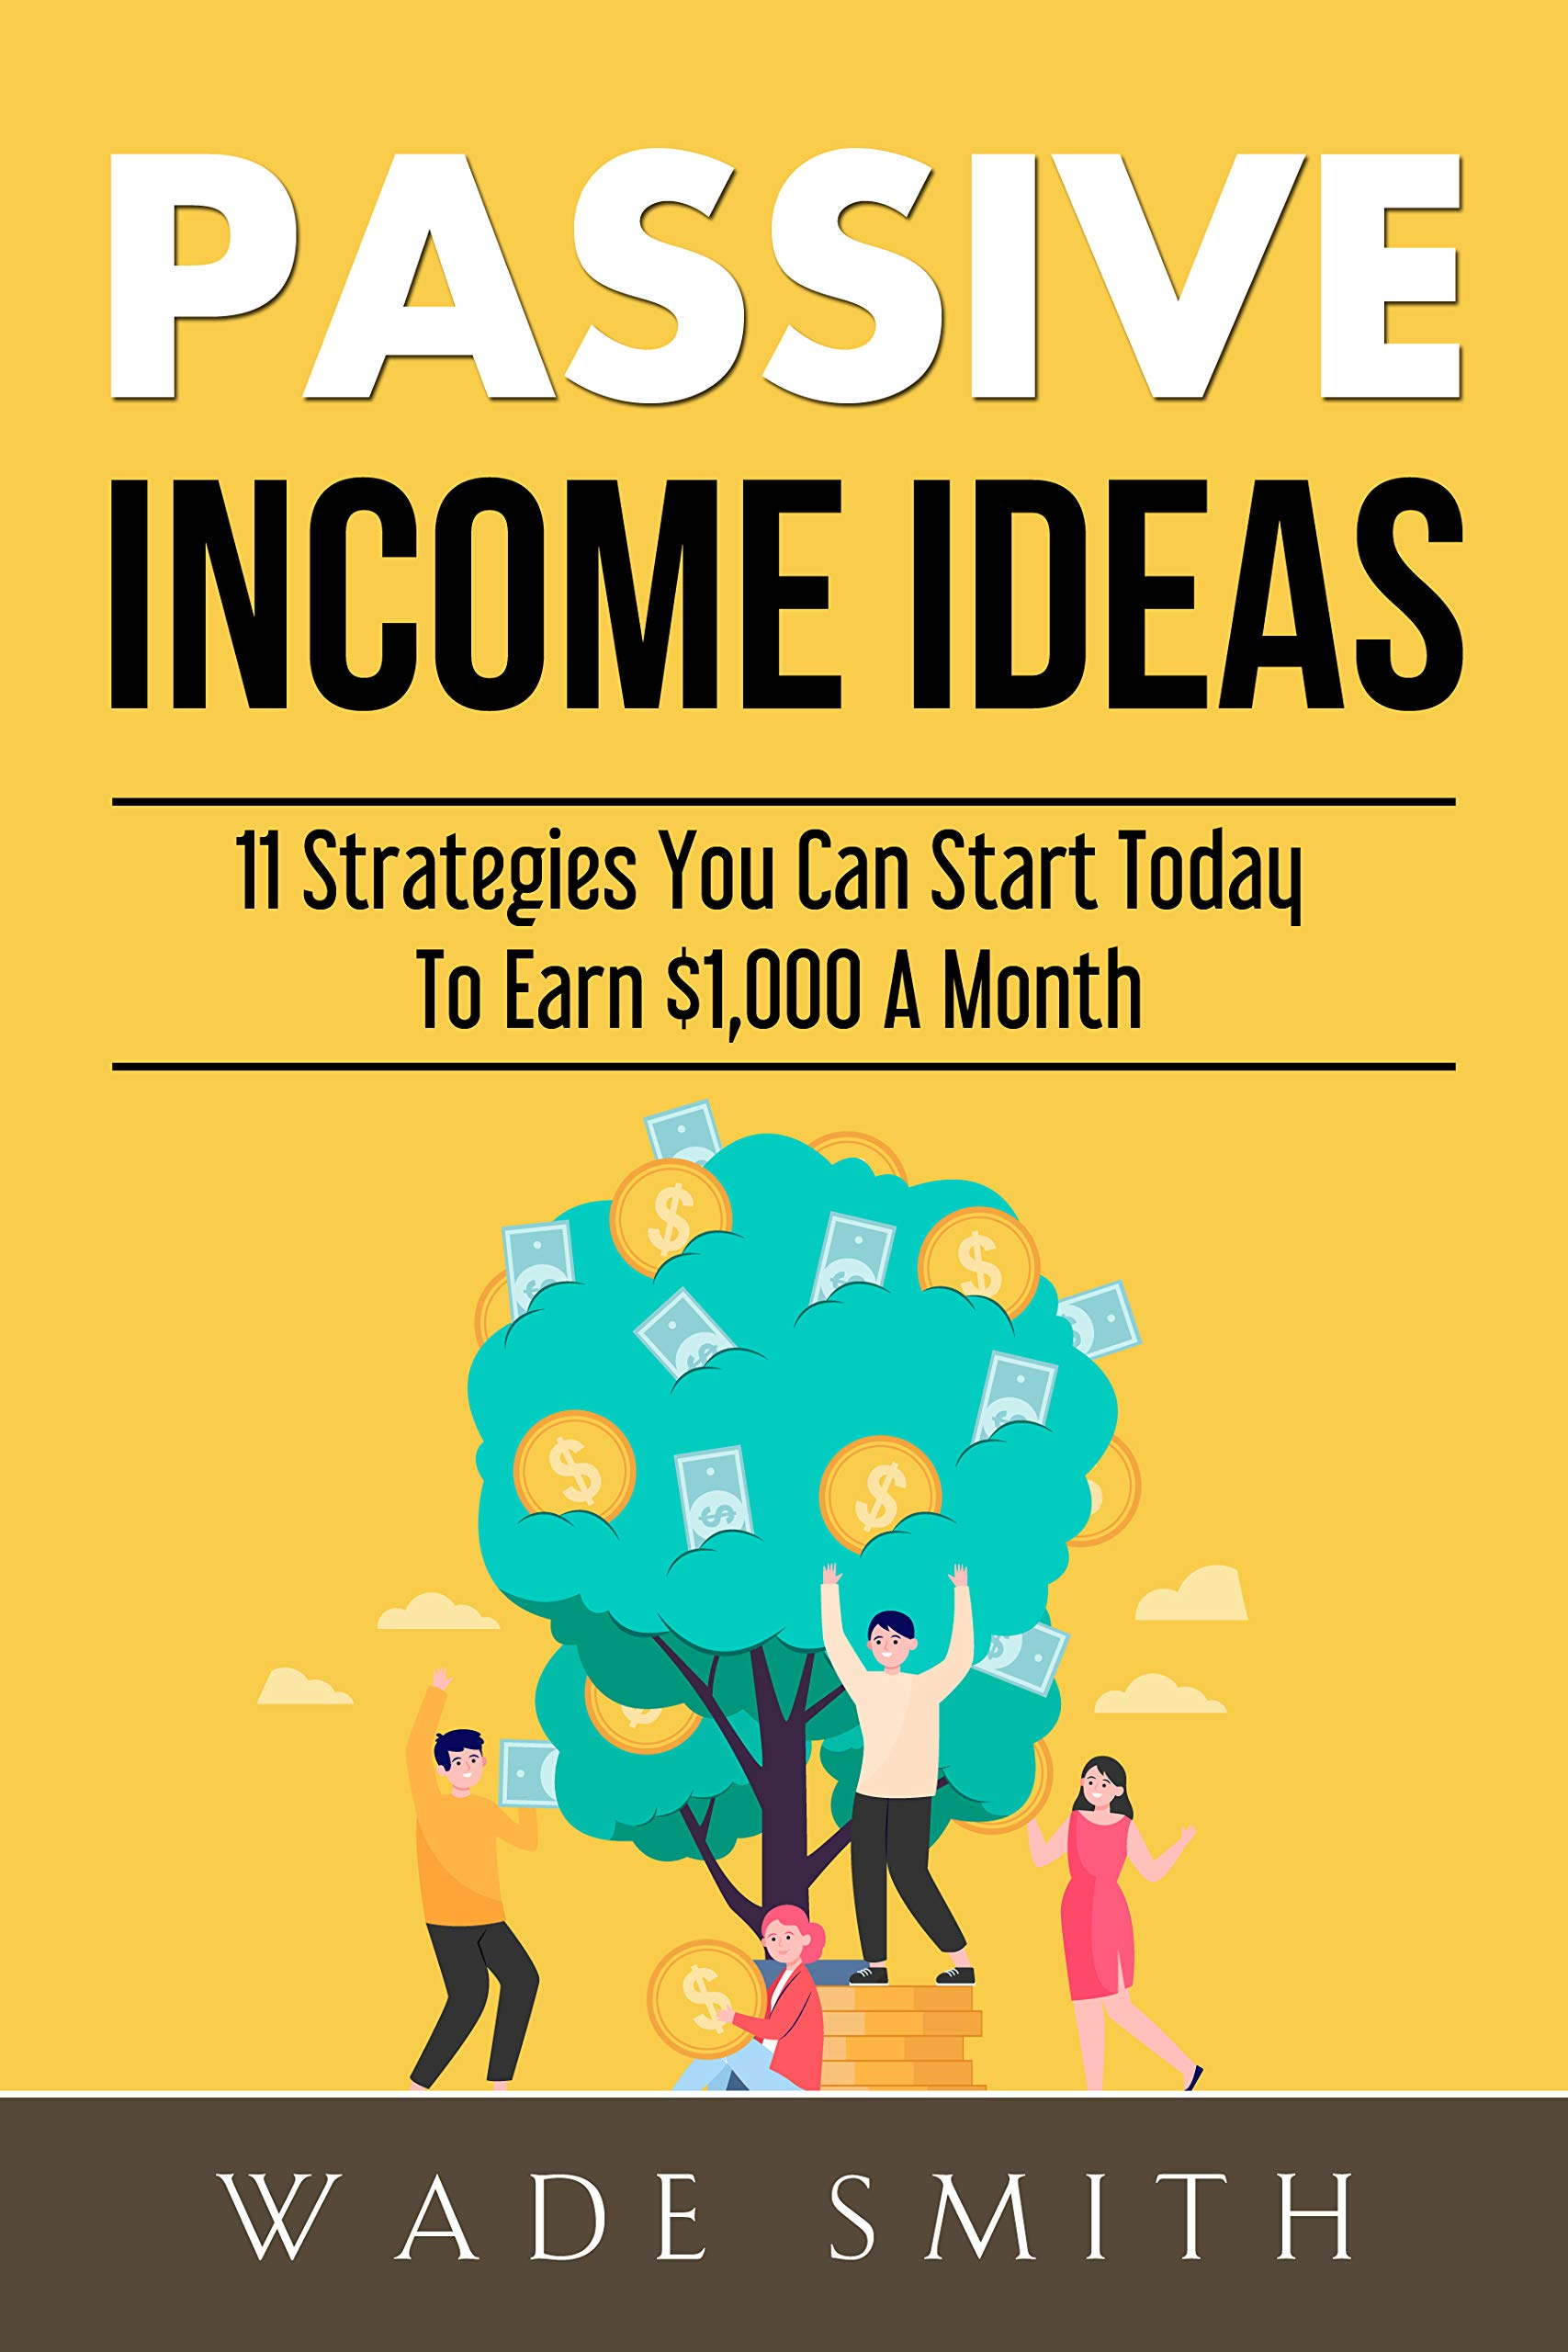 Passive Income Ideas: Strategies You Can Start Today To Earn $1,000 A Month